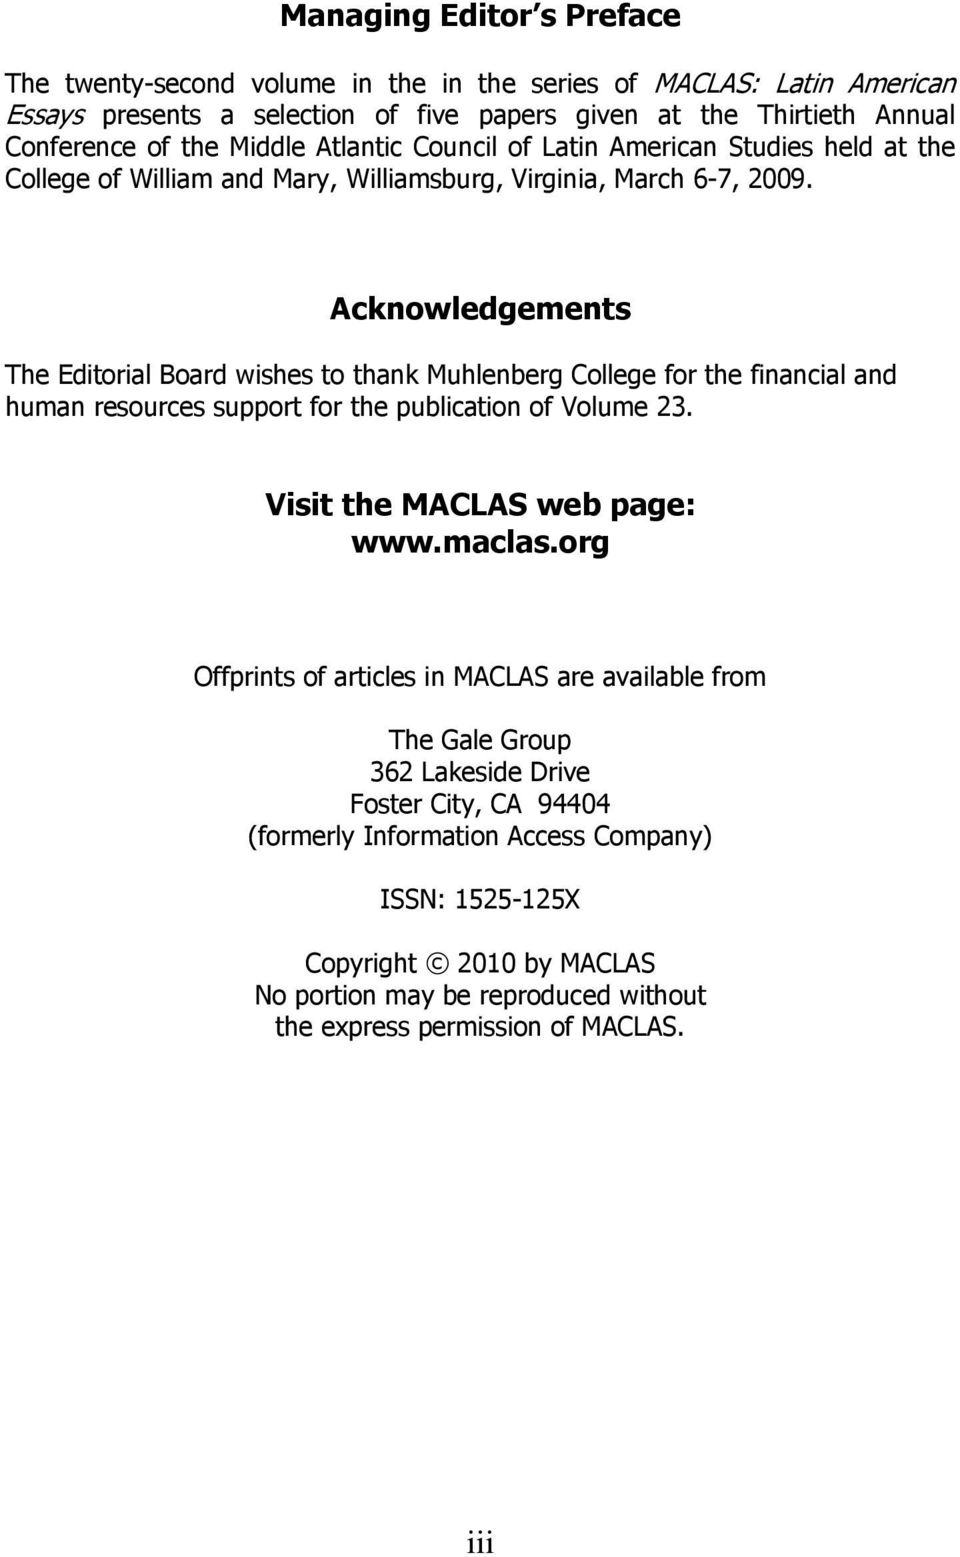 Acknowledgements The Editorial Board wishes to thank Muhlenberg College for the financial and human resources support for the publication of Volume 23. Visit the MACLAS web page: www.maclas.